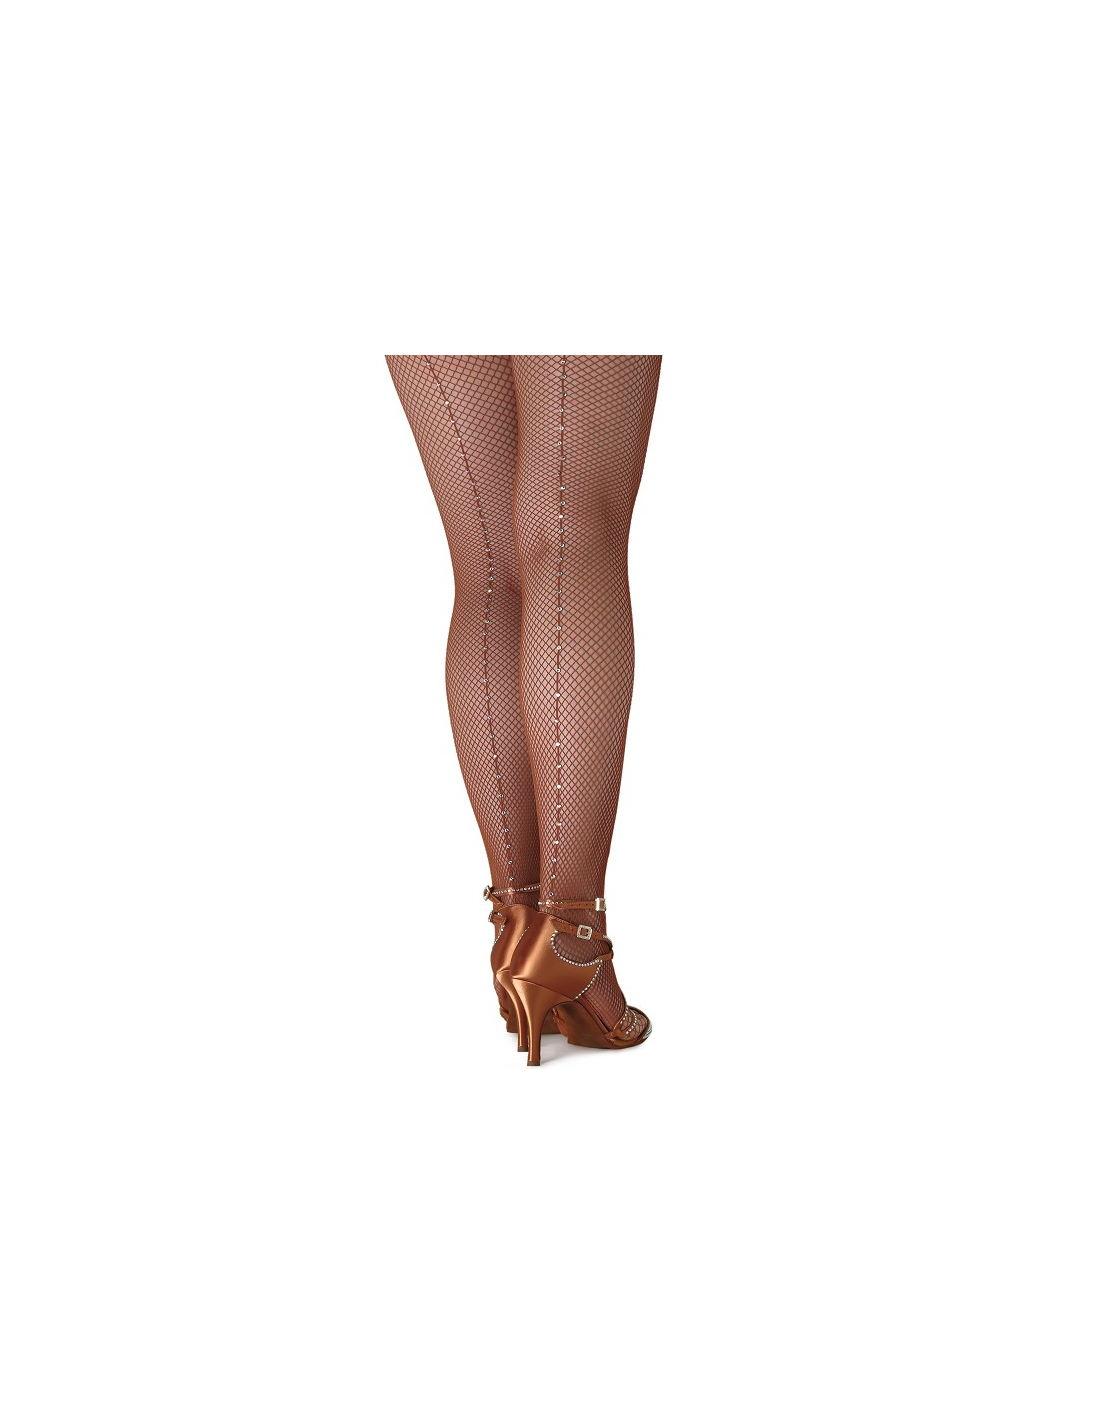 cc515c0e9739e Professional quality fishnet dance tights with crystals with foot ...